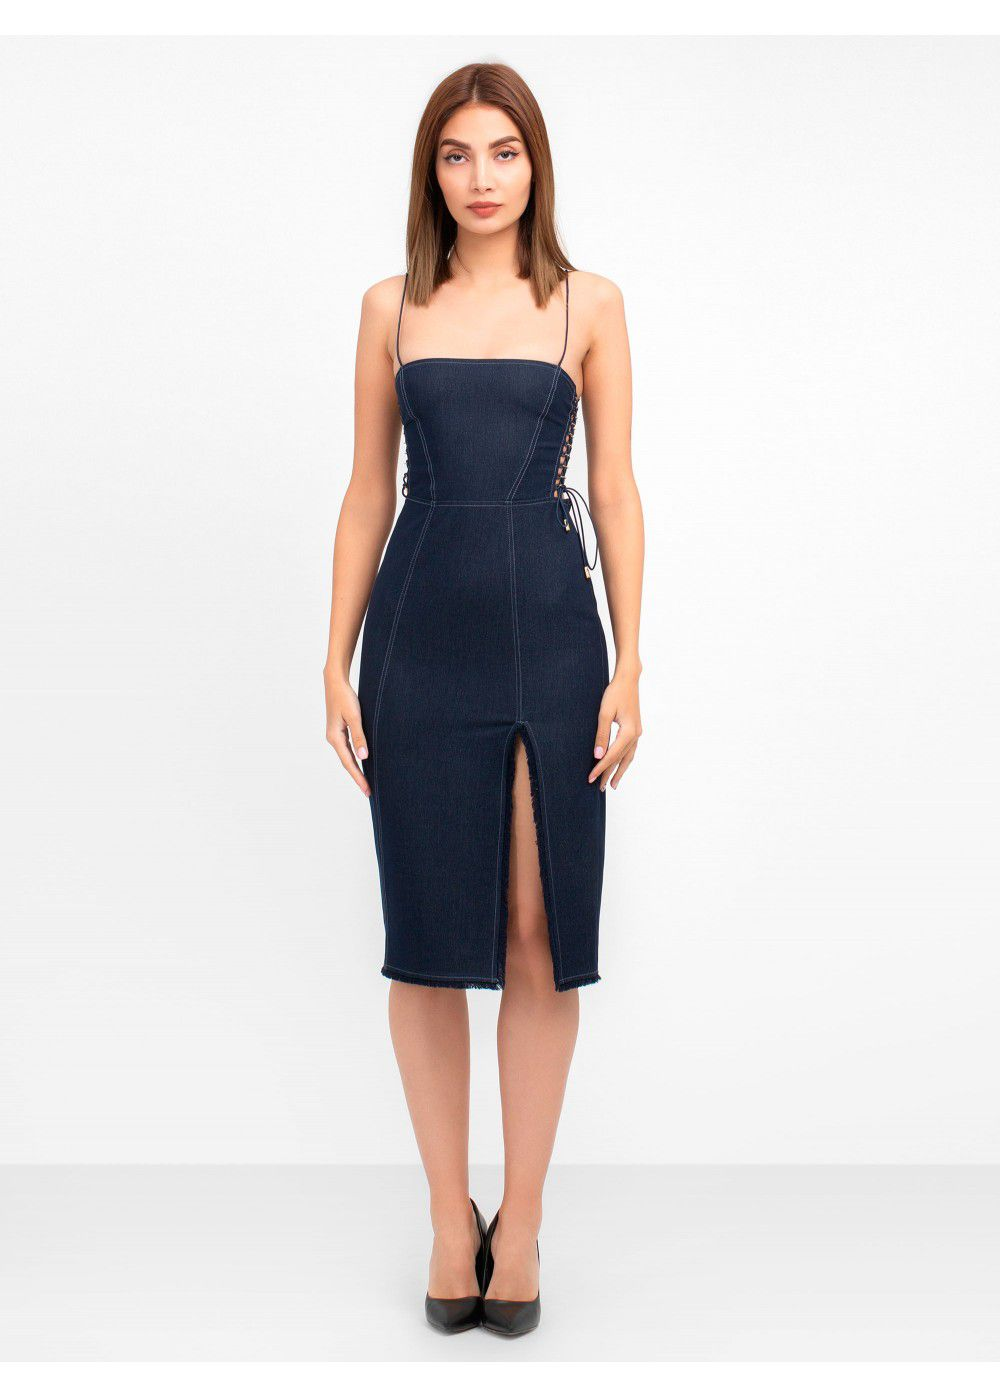 Misha Collection Iris Denim Dress